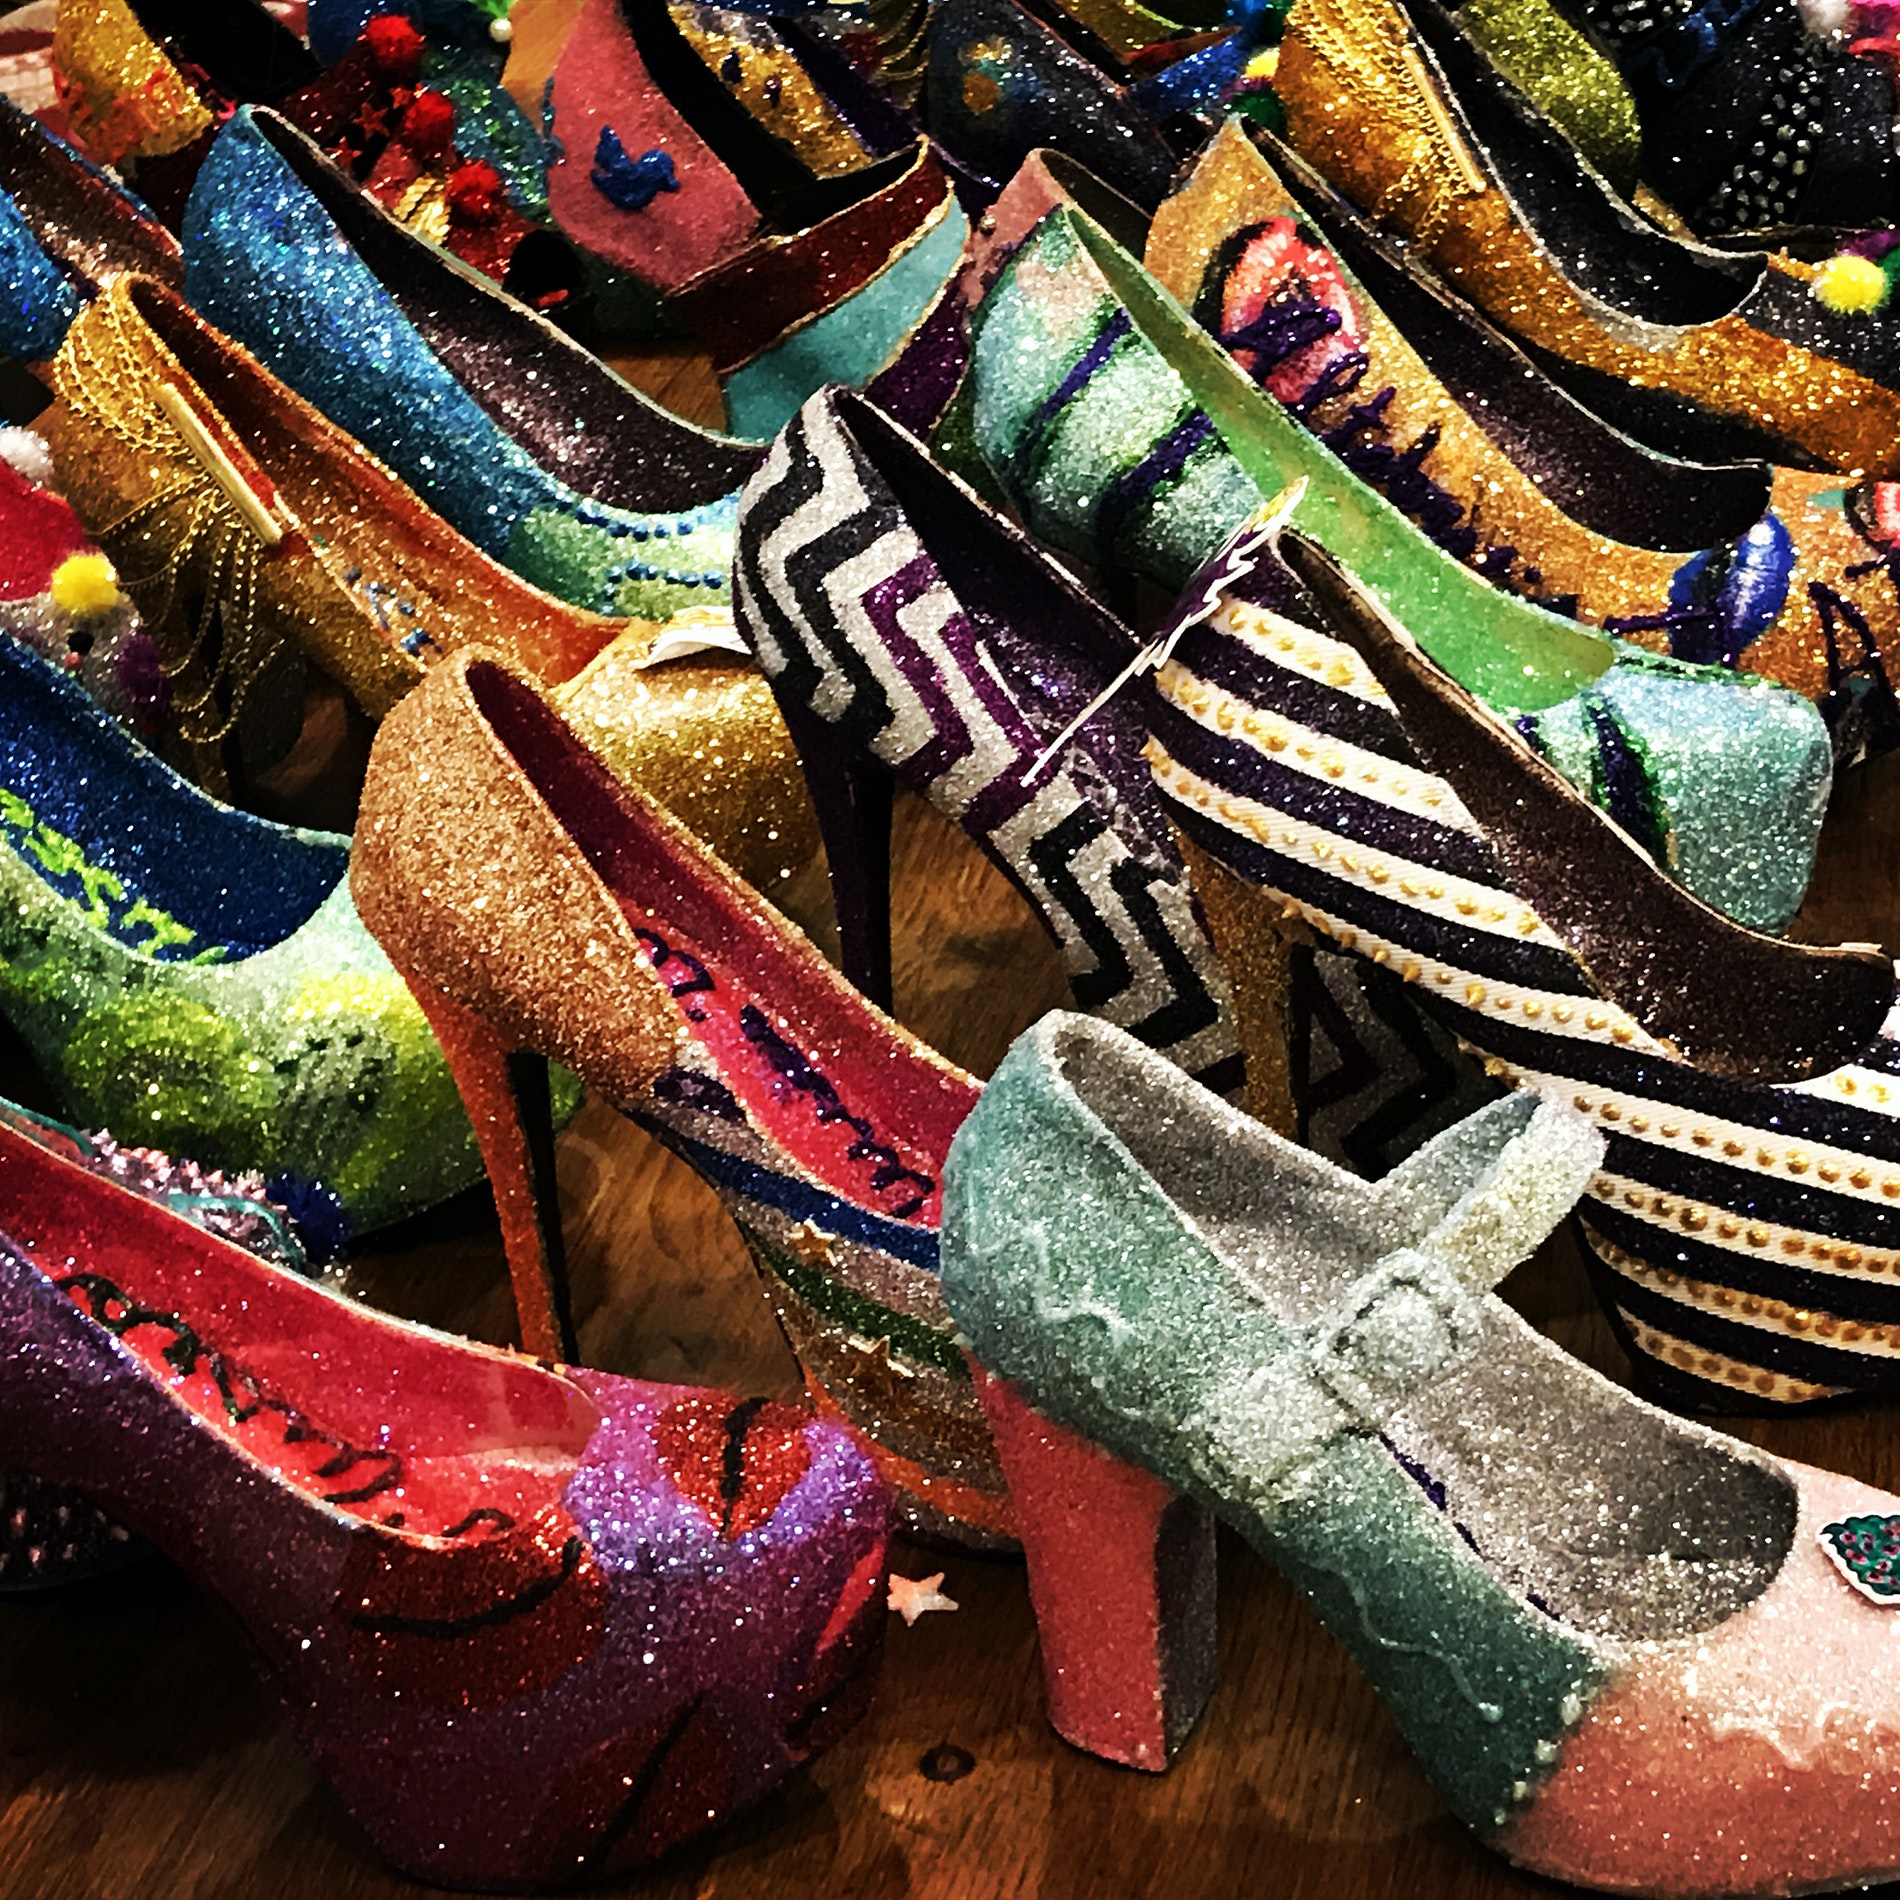 A member of the all-female Mardi Gras krewe Muses, April Blevins Pejic spends about 150 hours each year decorating the 30 shoes she hands out on her krewe's Mardi Gras float.